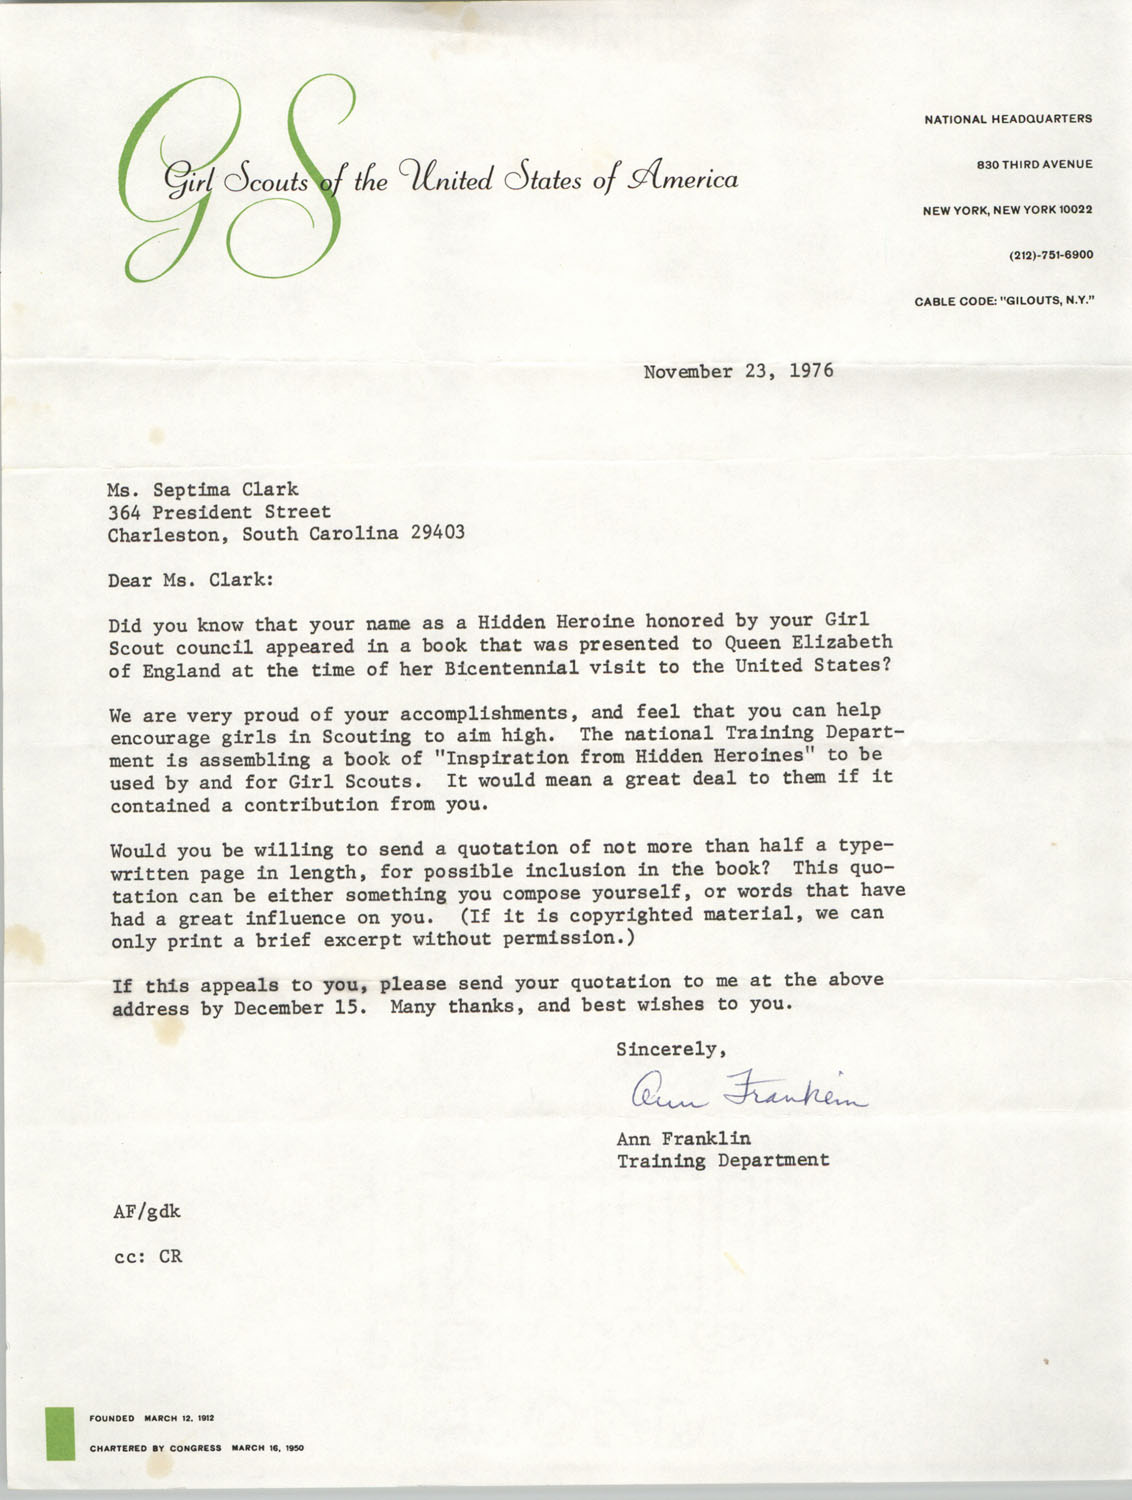 Letter from Ann Franklin to Septima P. Clark, November 23, 1976